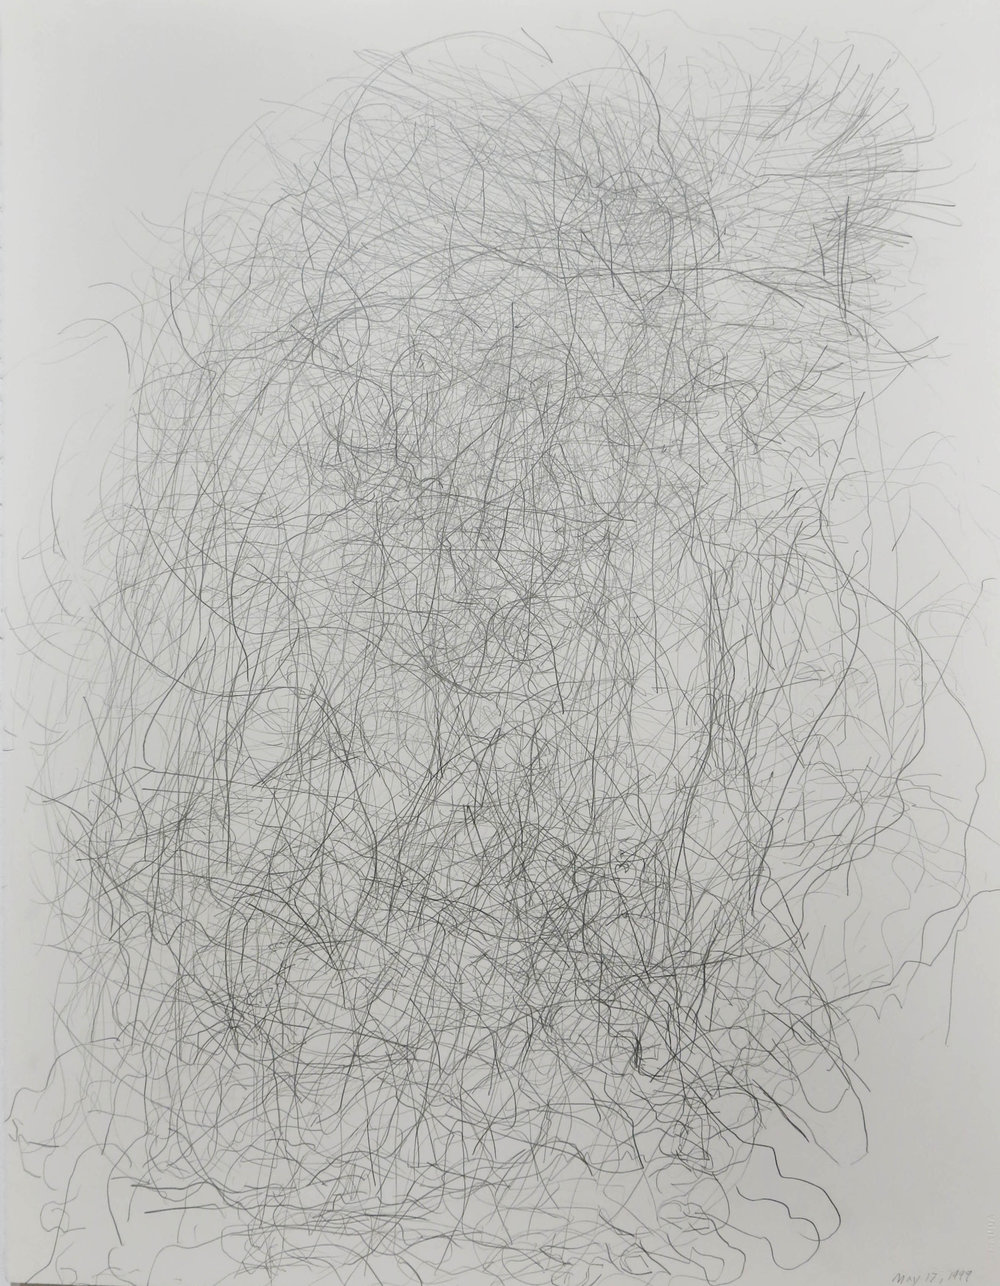 Edward Finnegan,  May 17, 1999 (Portraits series) , 1999, Graphite on paper, 30h x 22.5w in.